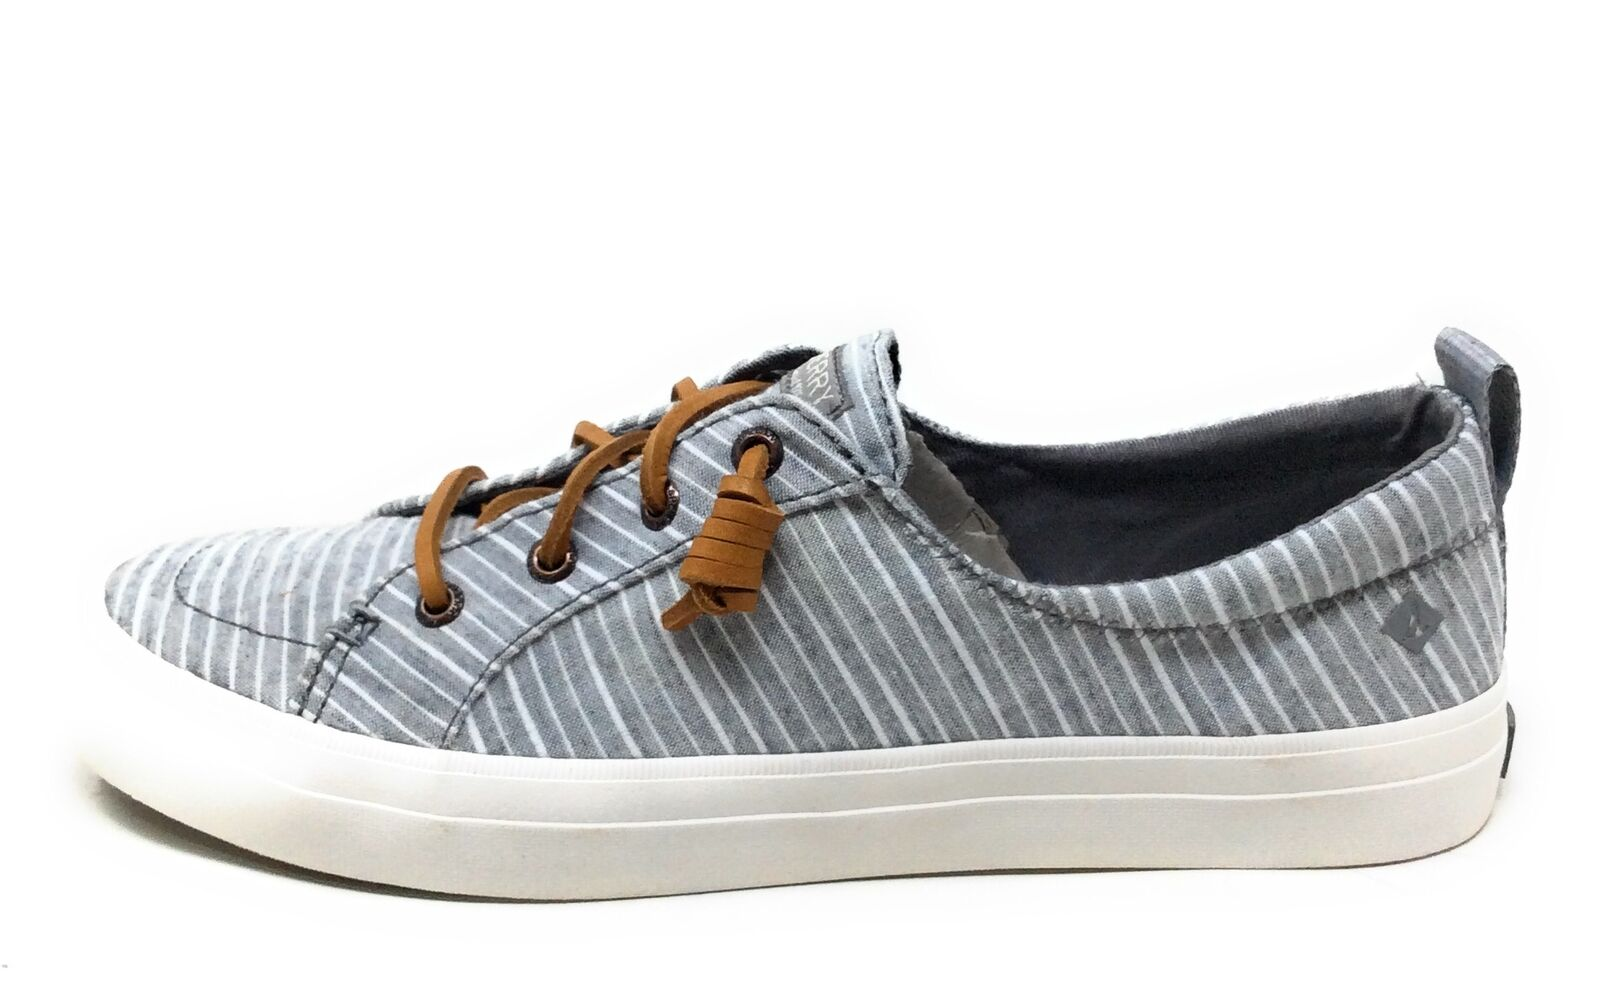 Sperry Top Sider Women's Crest Vibe Shoes Grey White Stripe Size 6 US